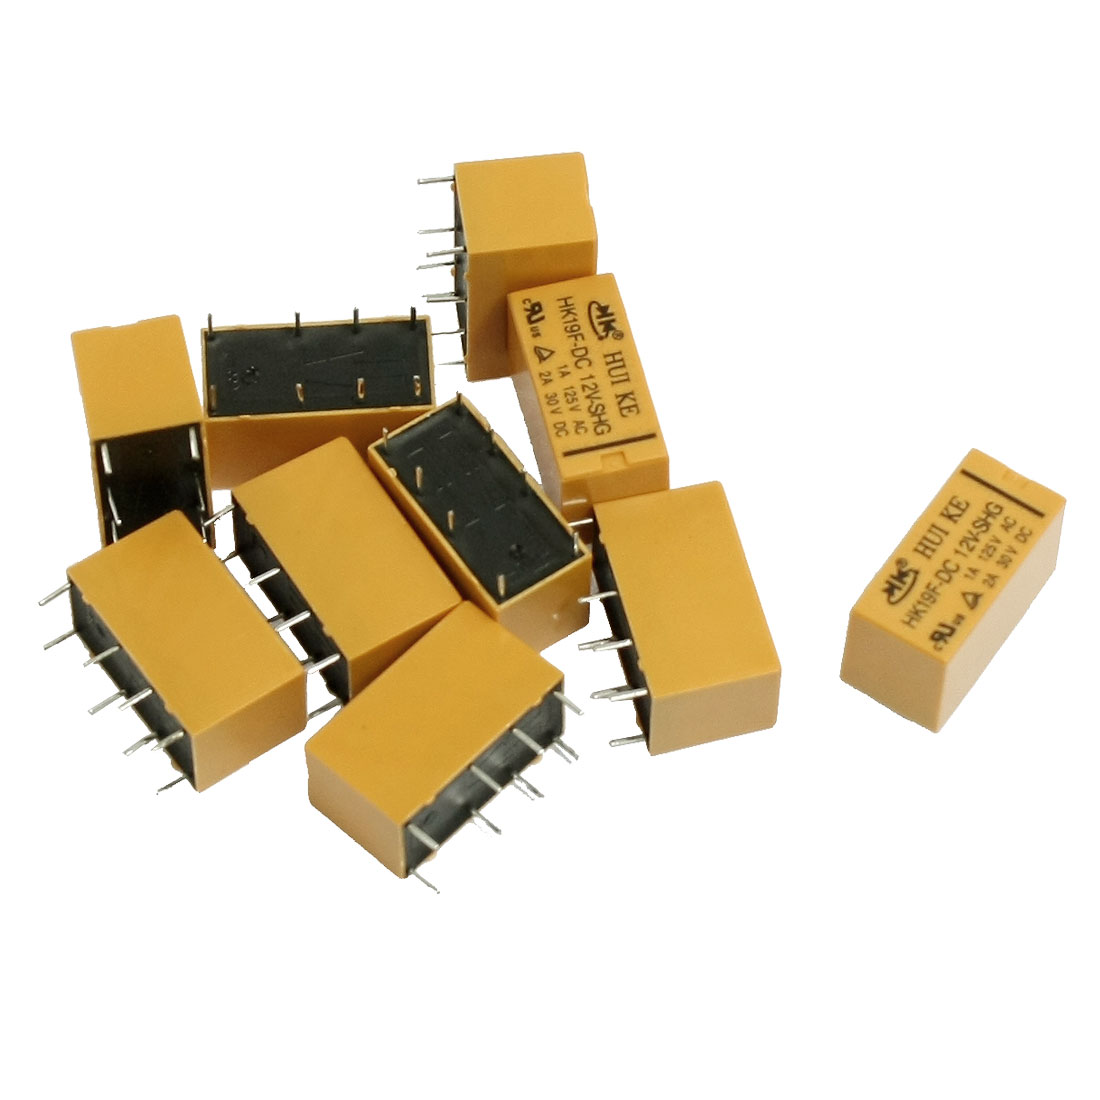 10 Pcs DC 12V Coil DPDT 8 Pin PCB General Purpose Power Relay HK19F